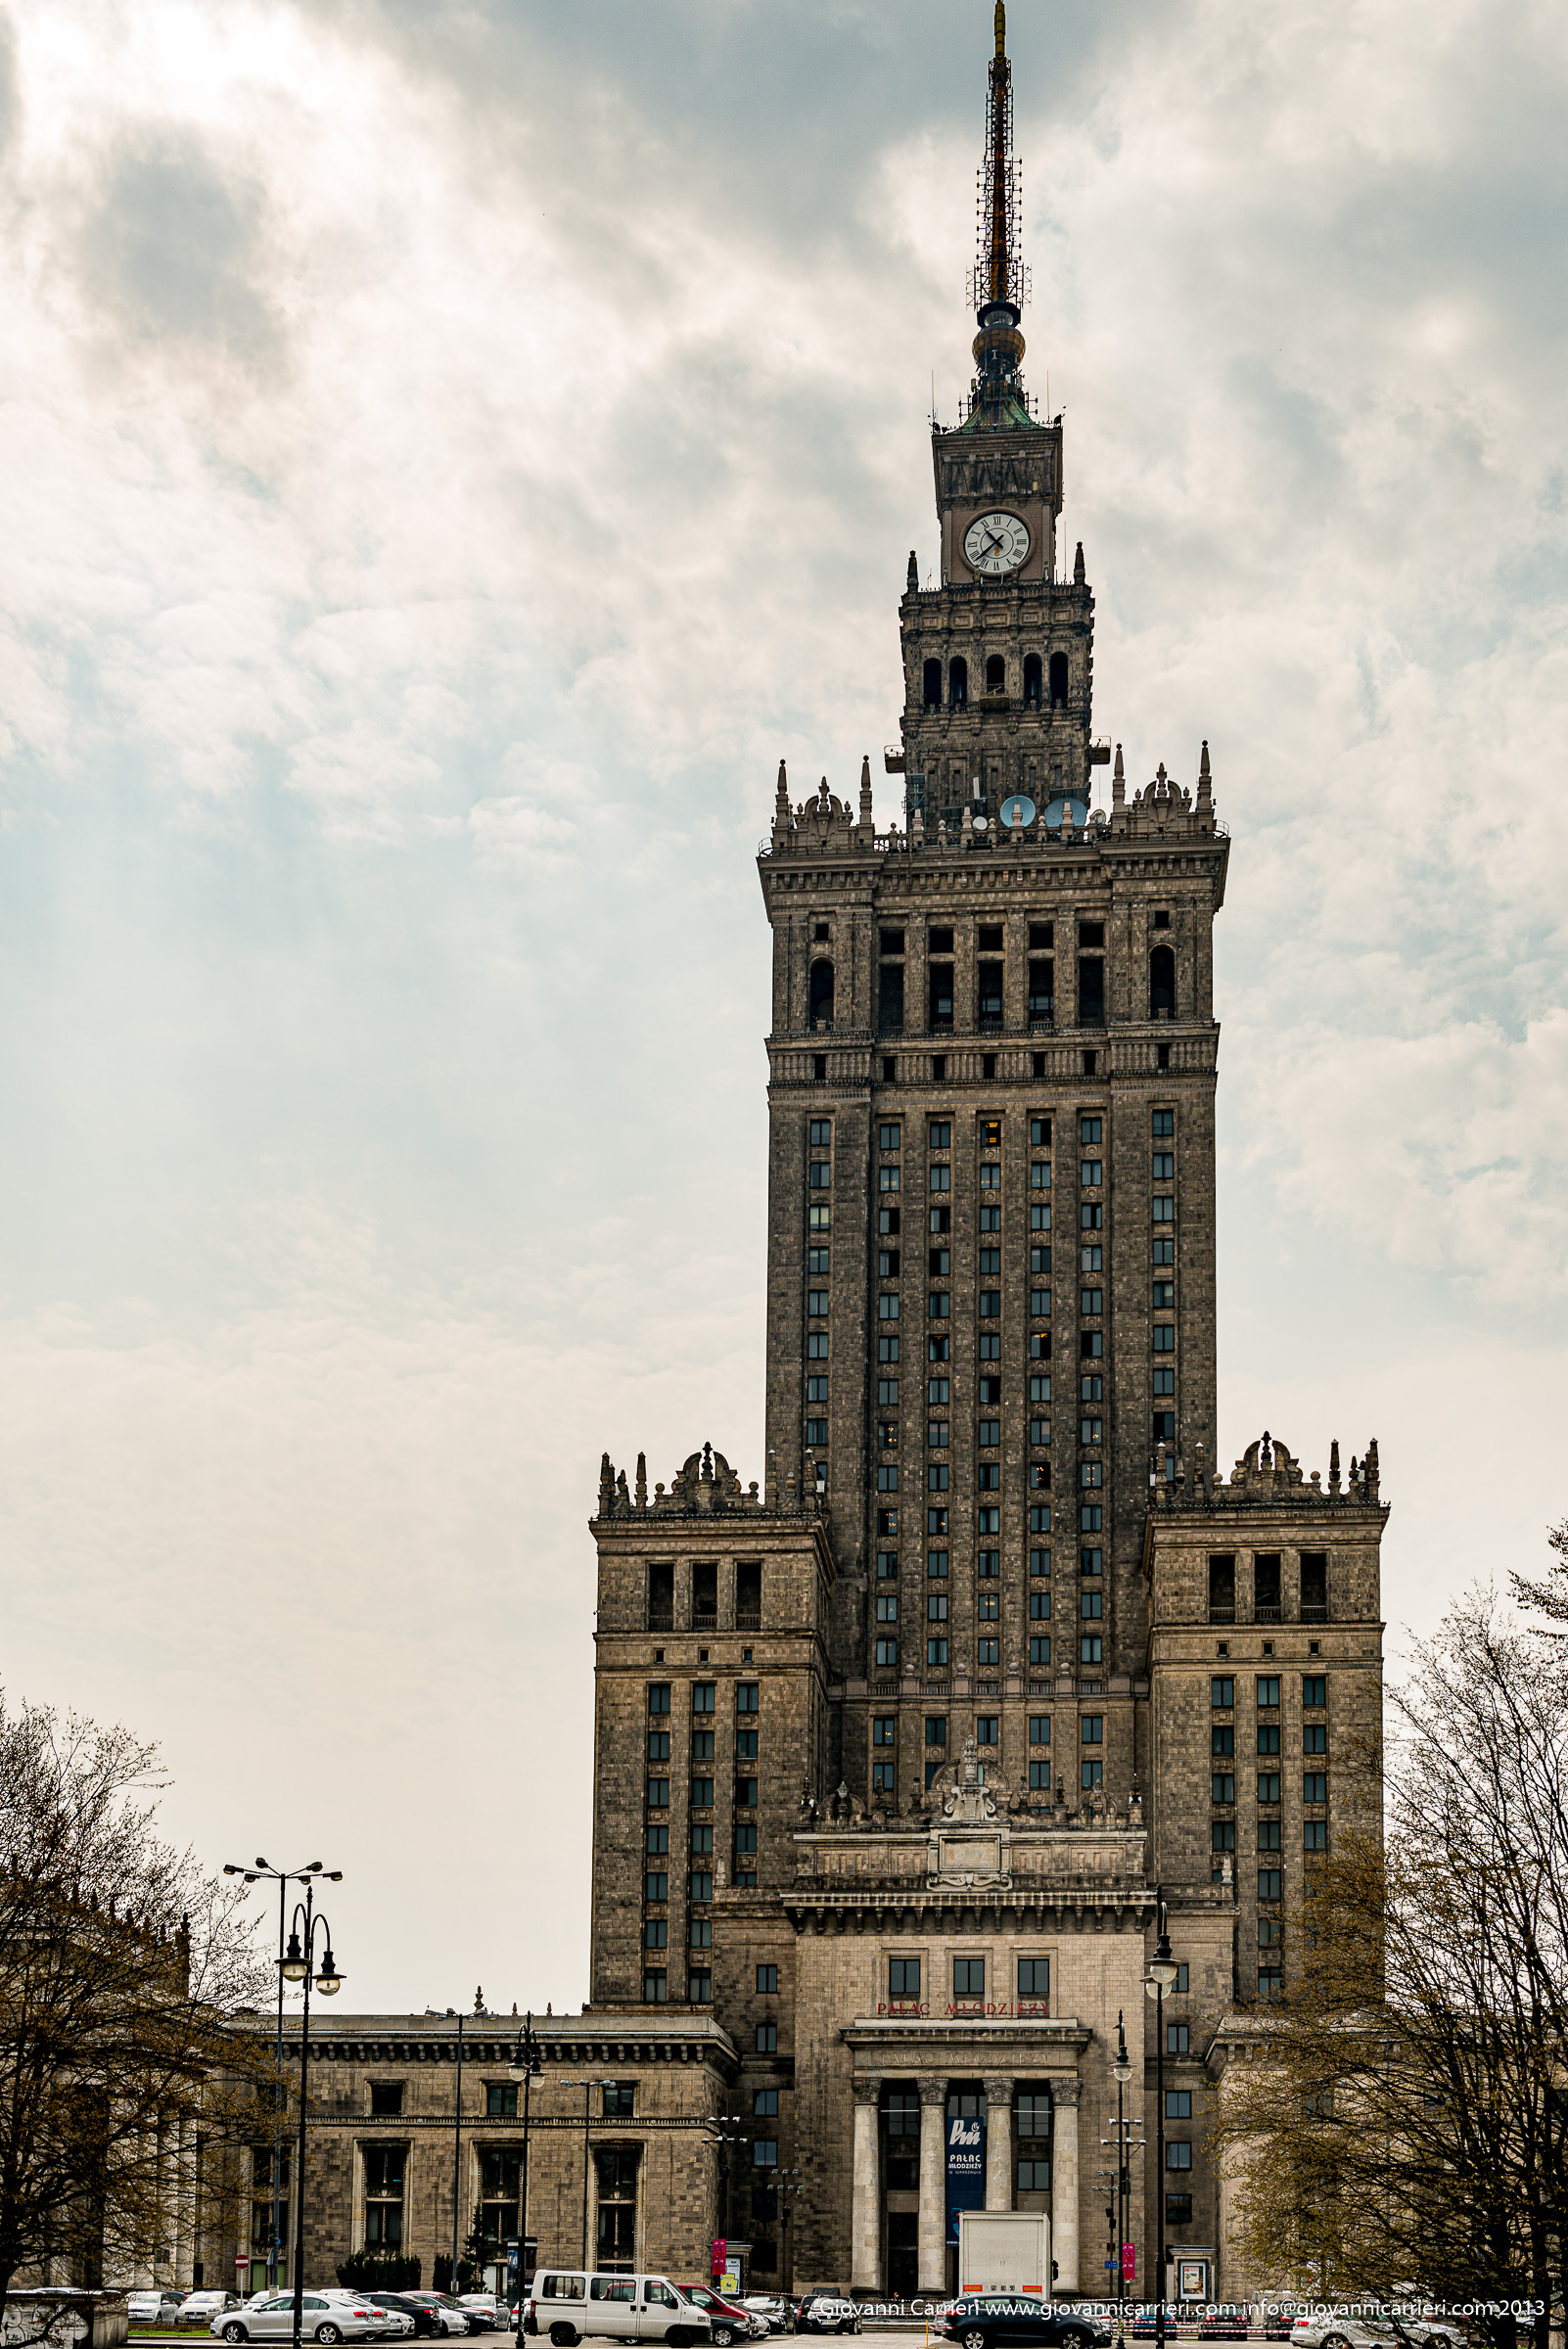 The Palace of Culture and Science, built by Joseph Stalin